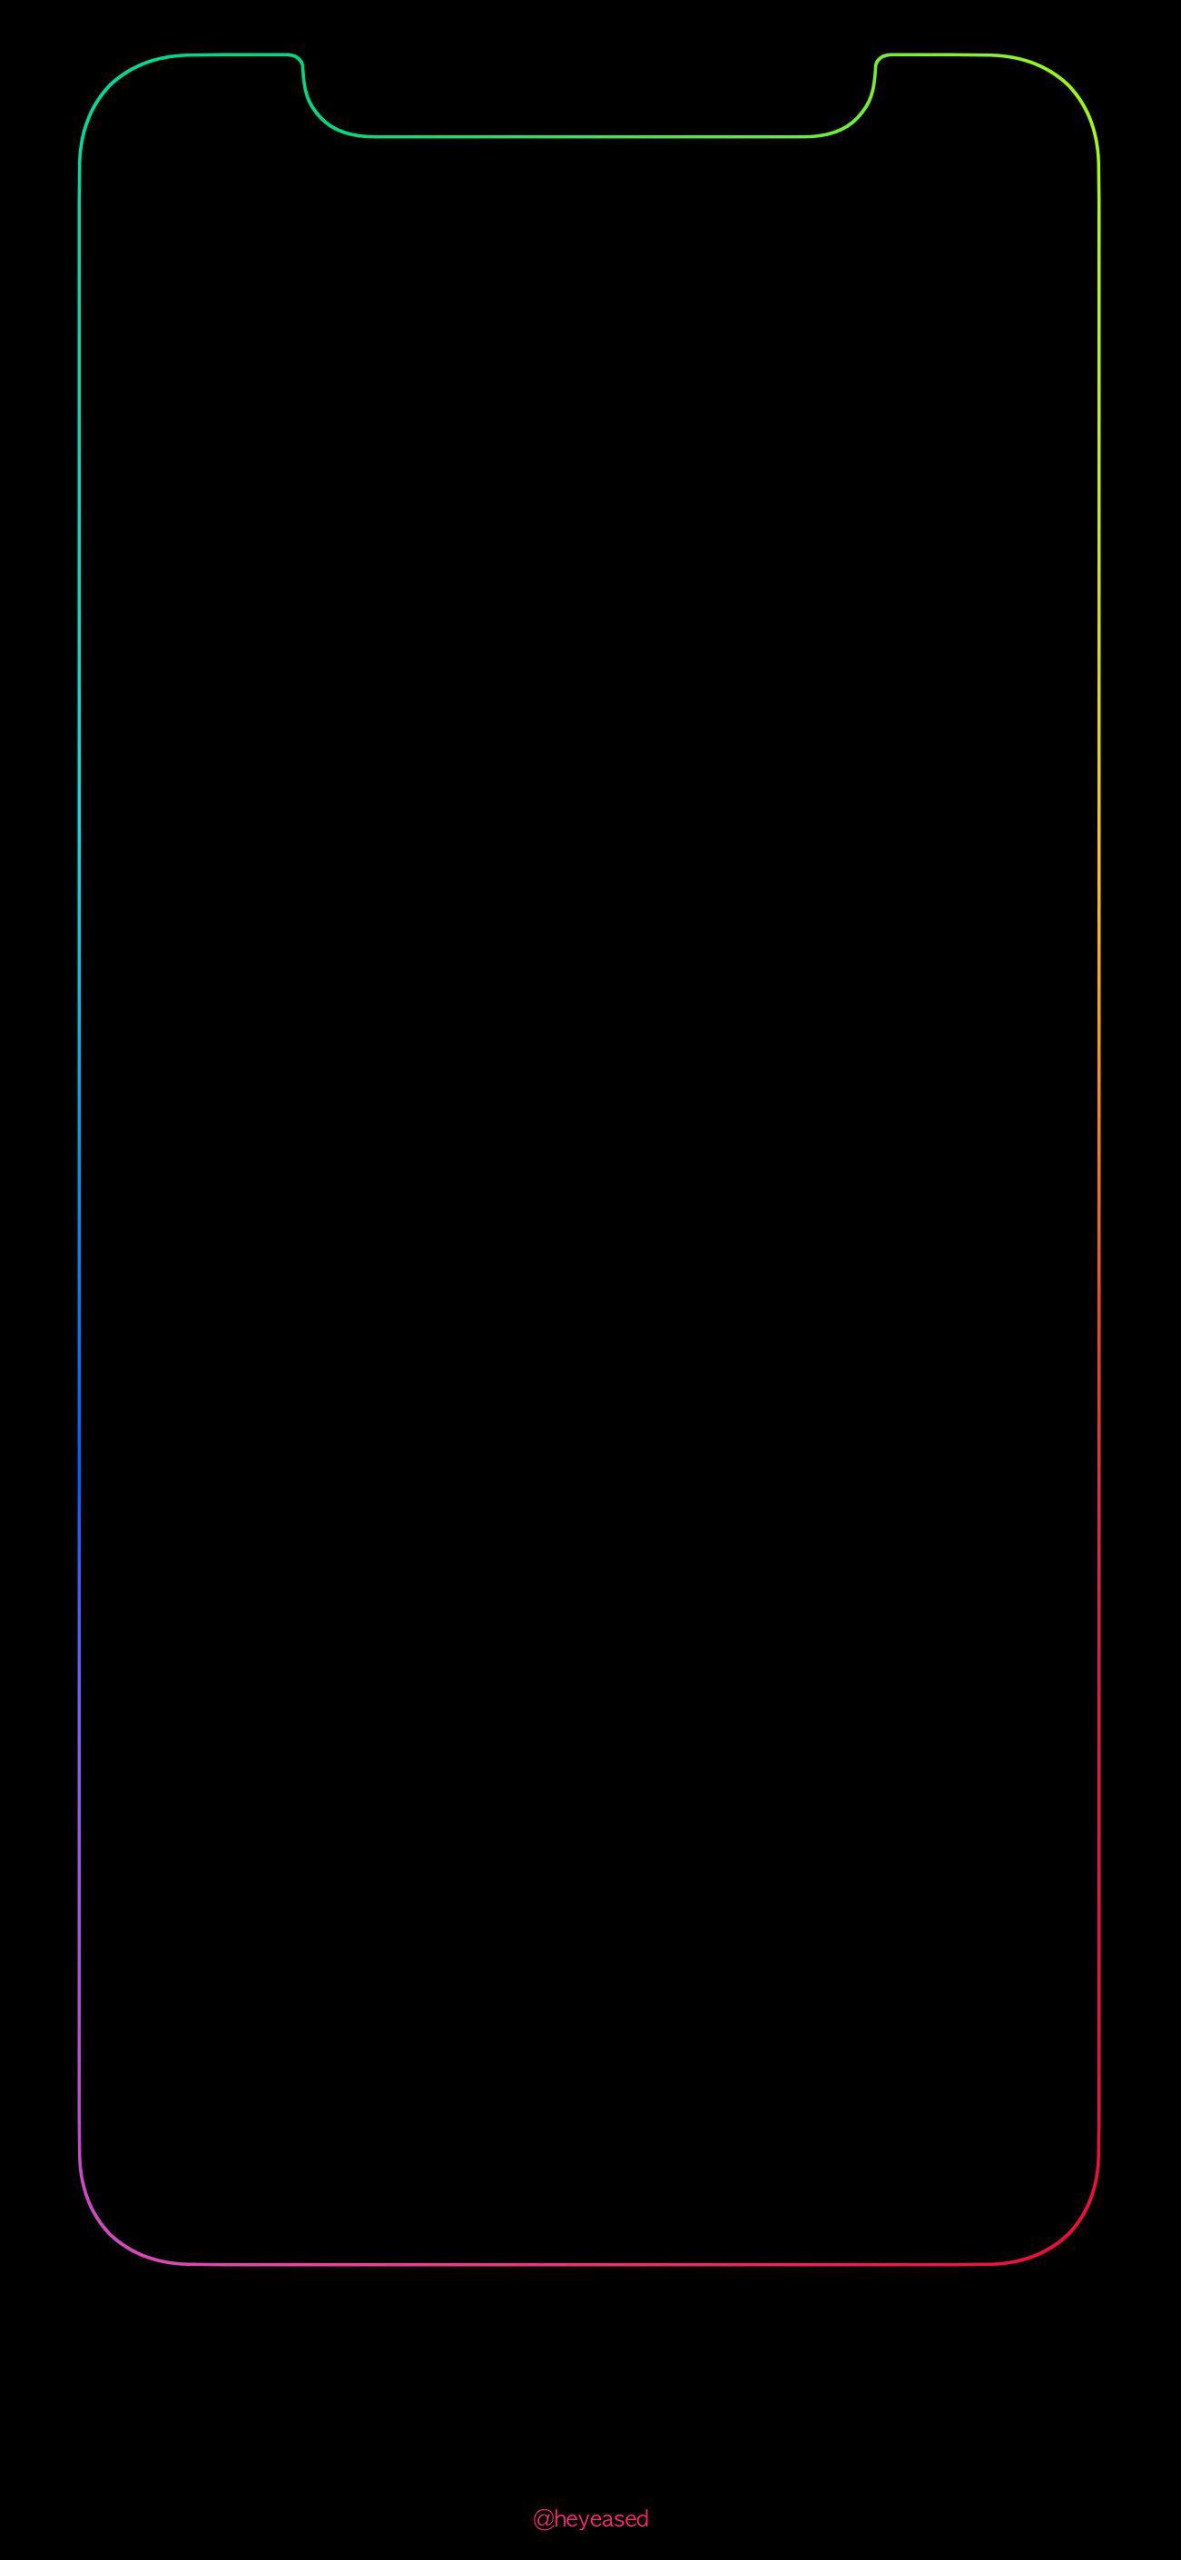 can anyone make this wallpaper for the iphone 12